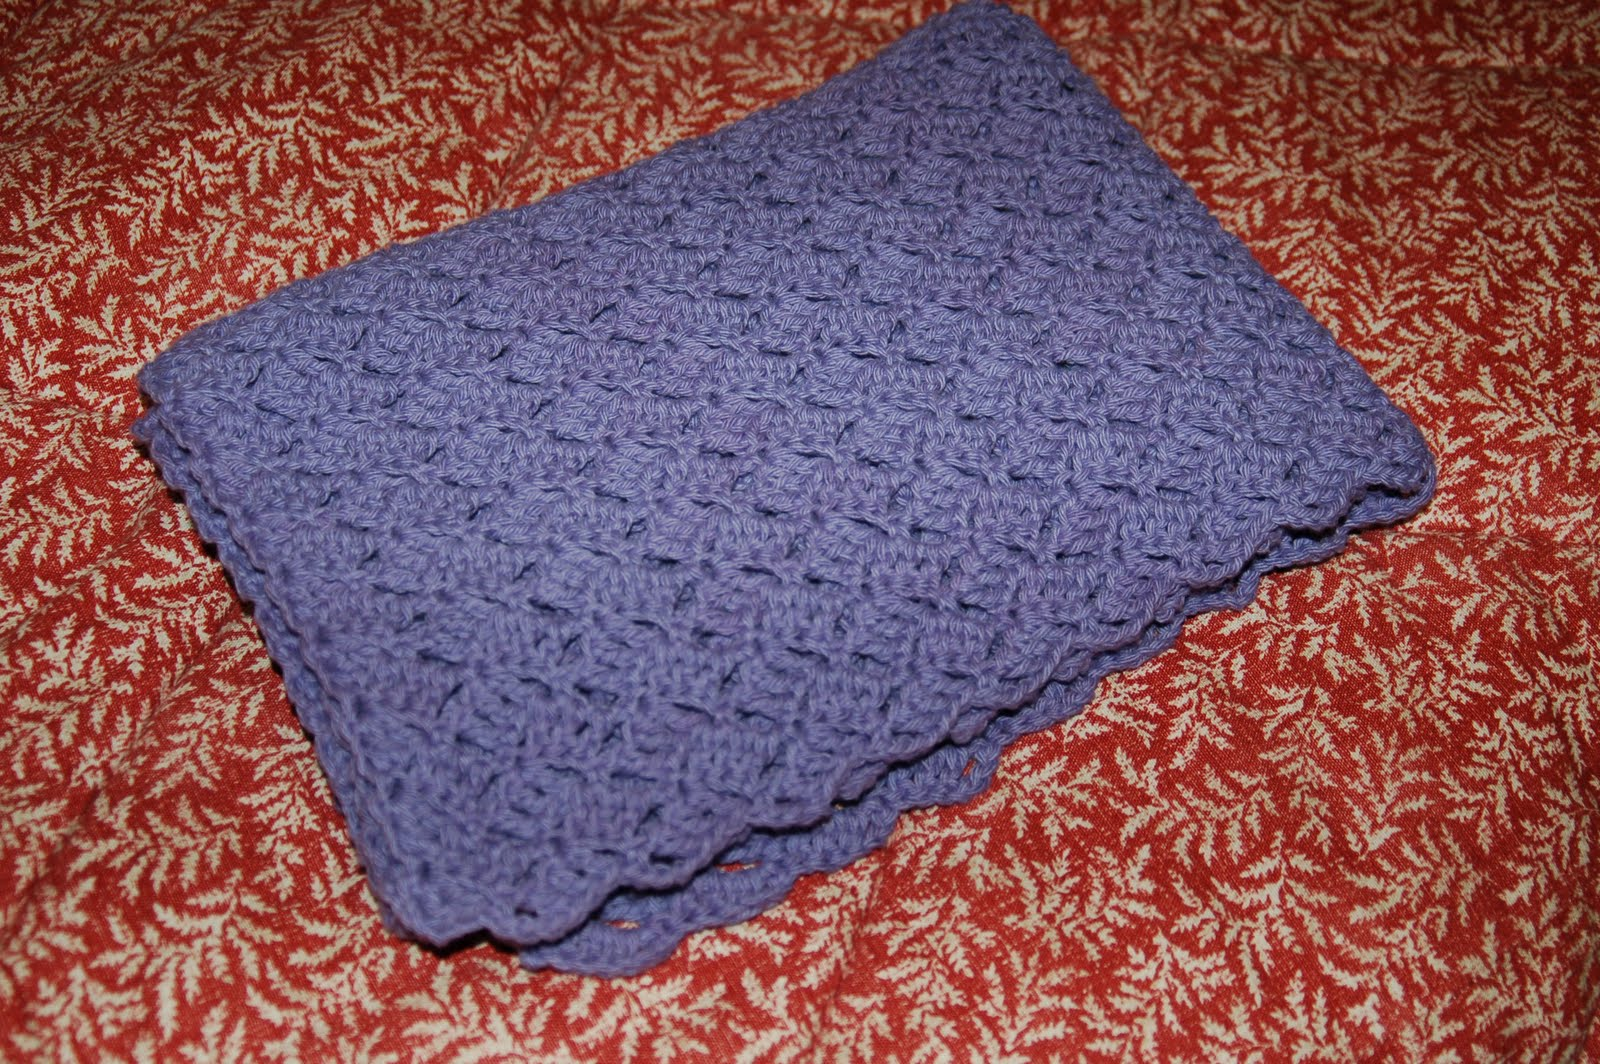 Crochet Patterns Bernat Blanket Yarn : Living the Craft Life: Baby Blanket out of Handicrafter yarn